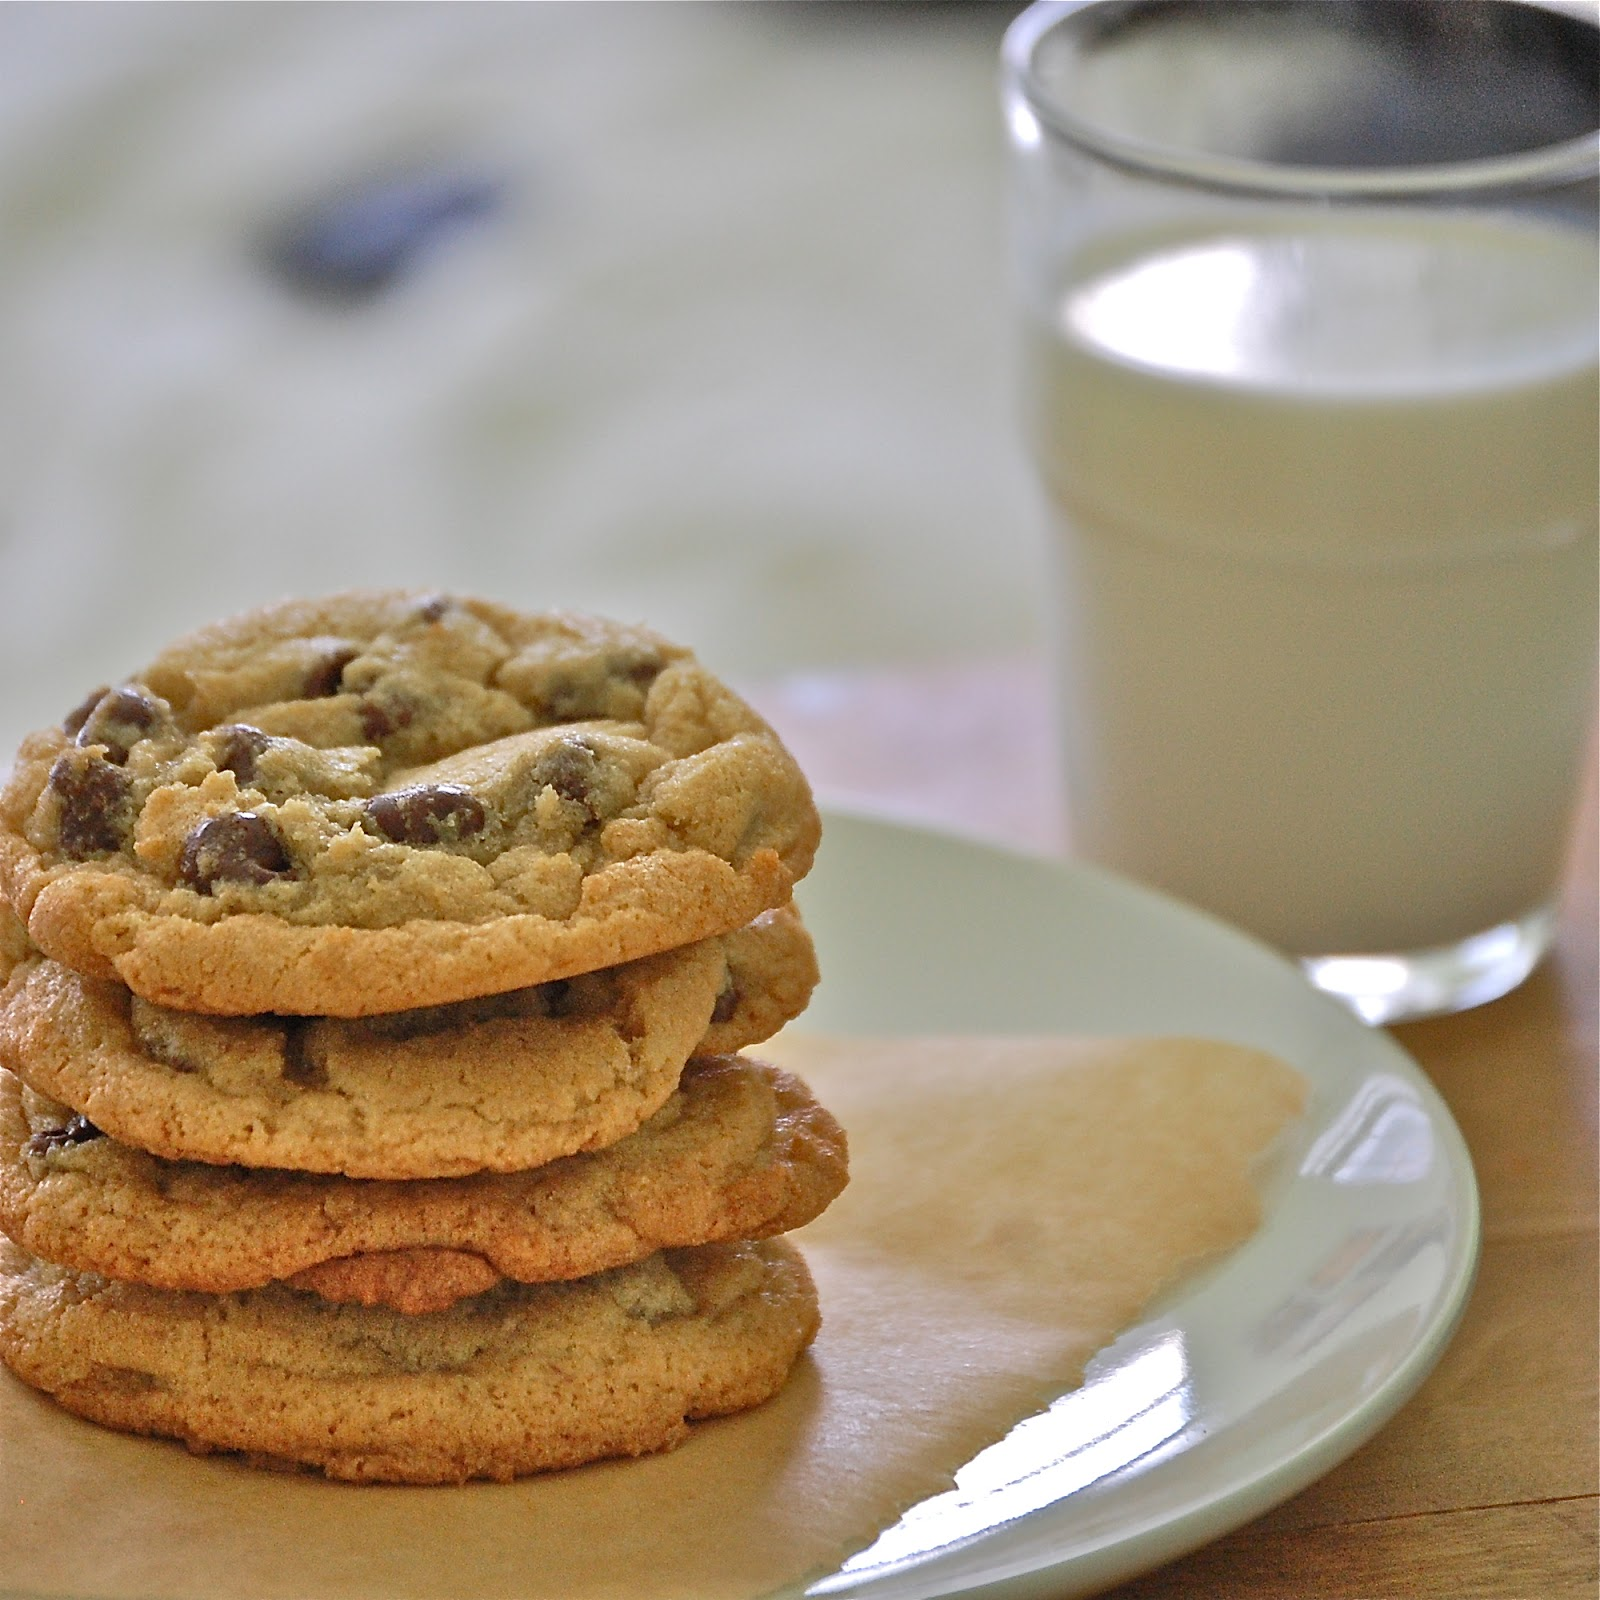 Quest for Delish: Ultimate Chocolate Chip Cookies